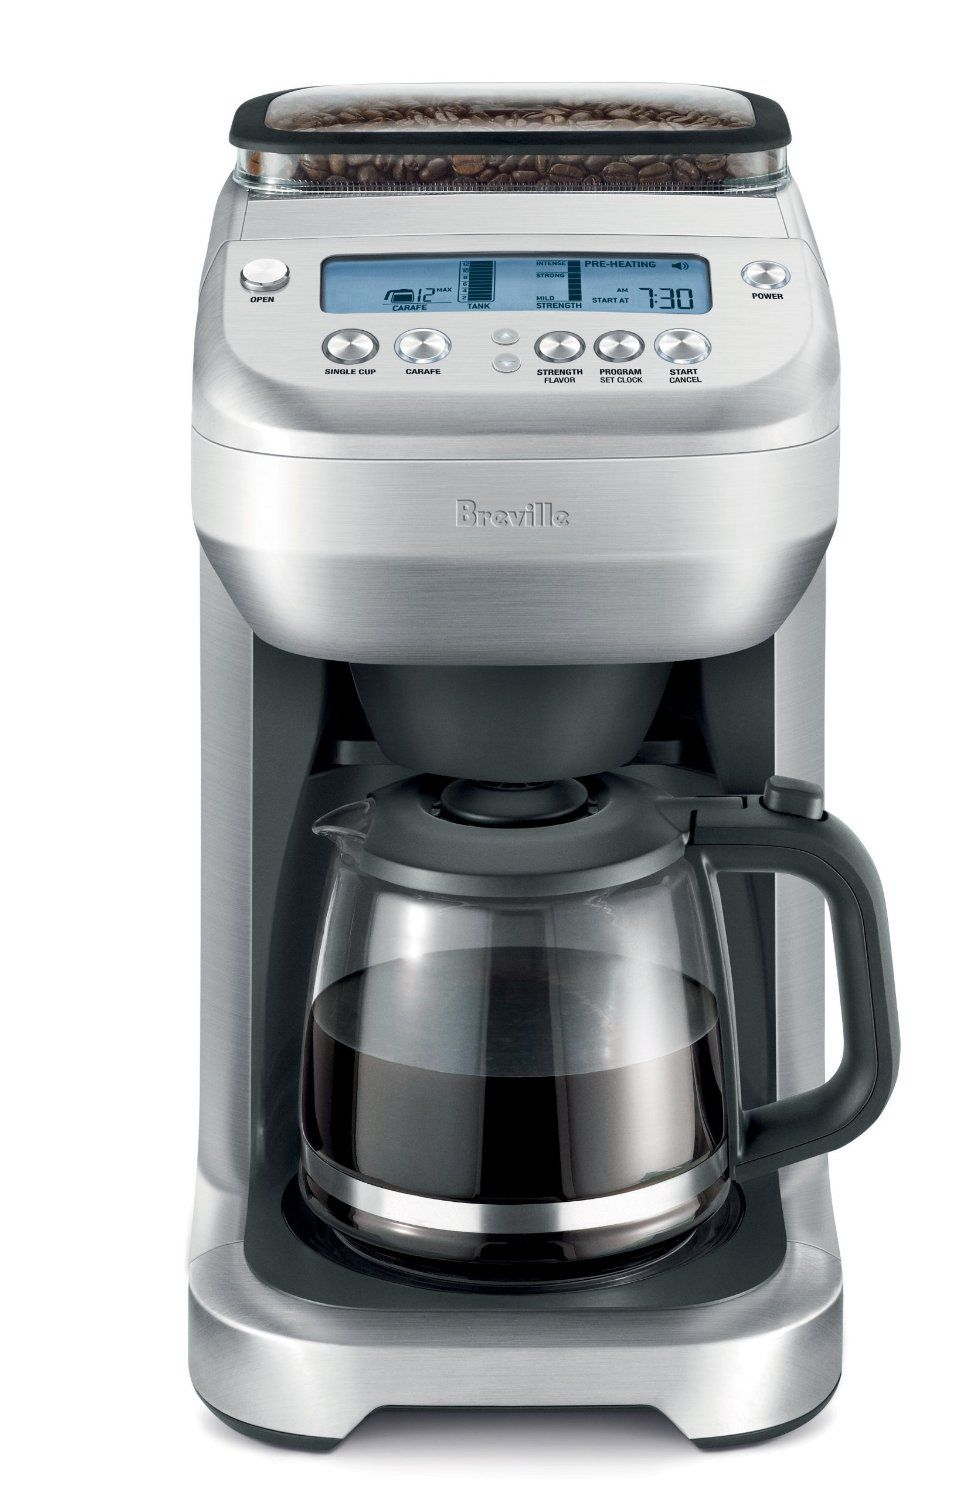 Best Coffee Maker with Grinder 15 (Top Picks in a Budget